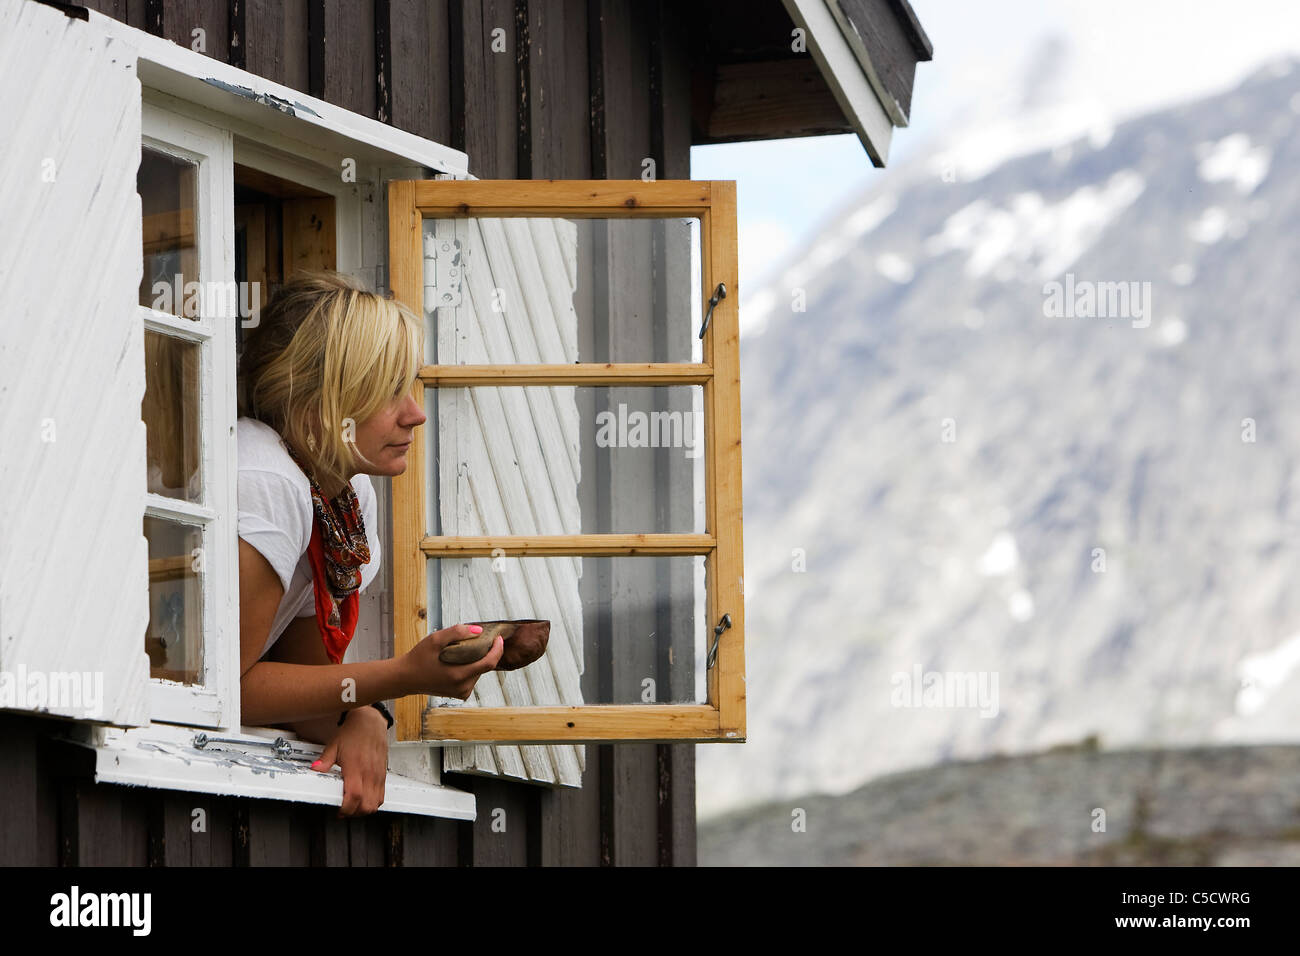 Blond woman with a kuksa looking through windows against blurred mountain - Stock Image